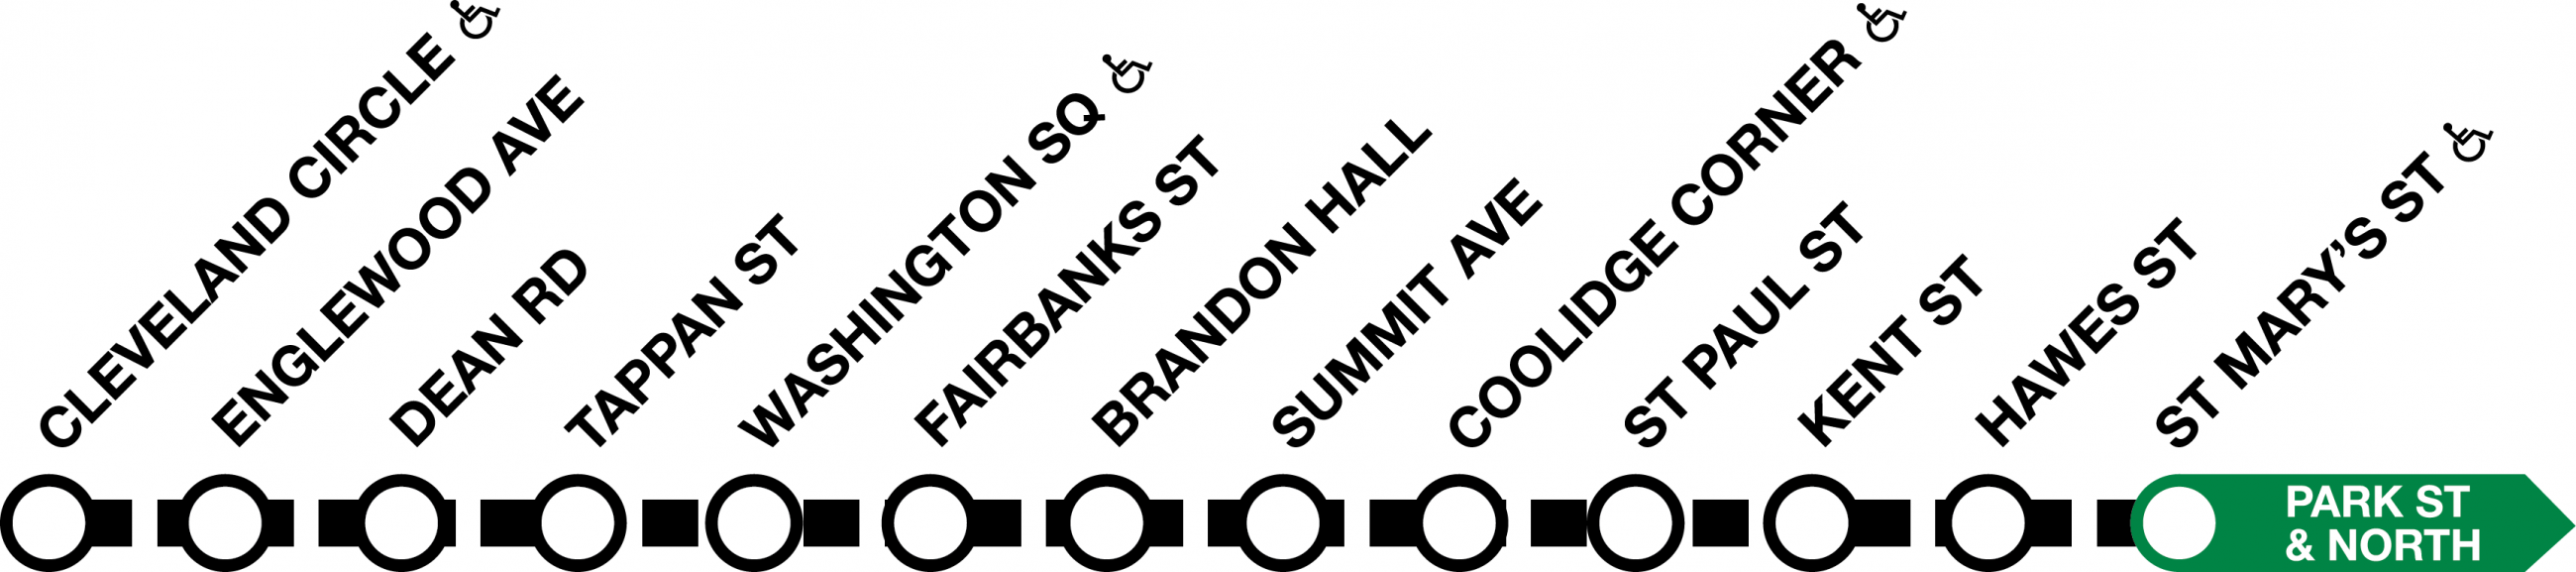 Line diagram of the Green Line C branch, showing bus shuttles between St Mary's Street and Cleveland Circle.